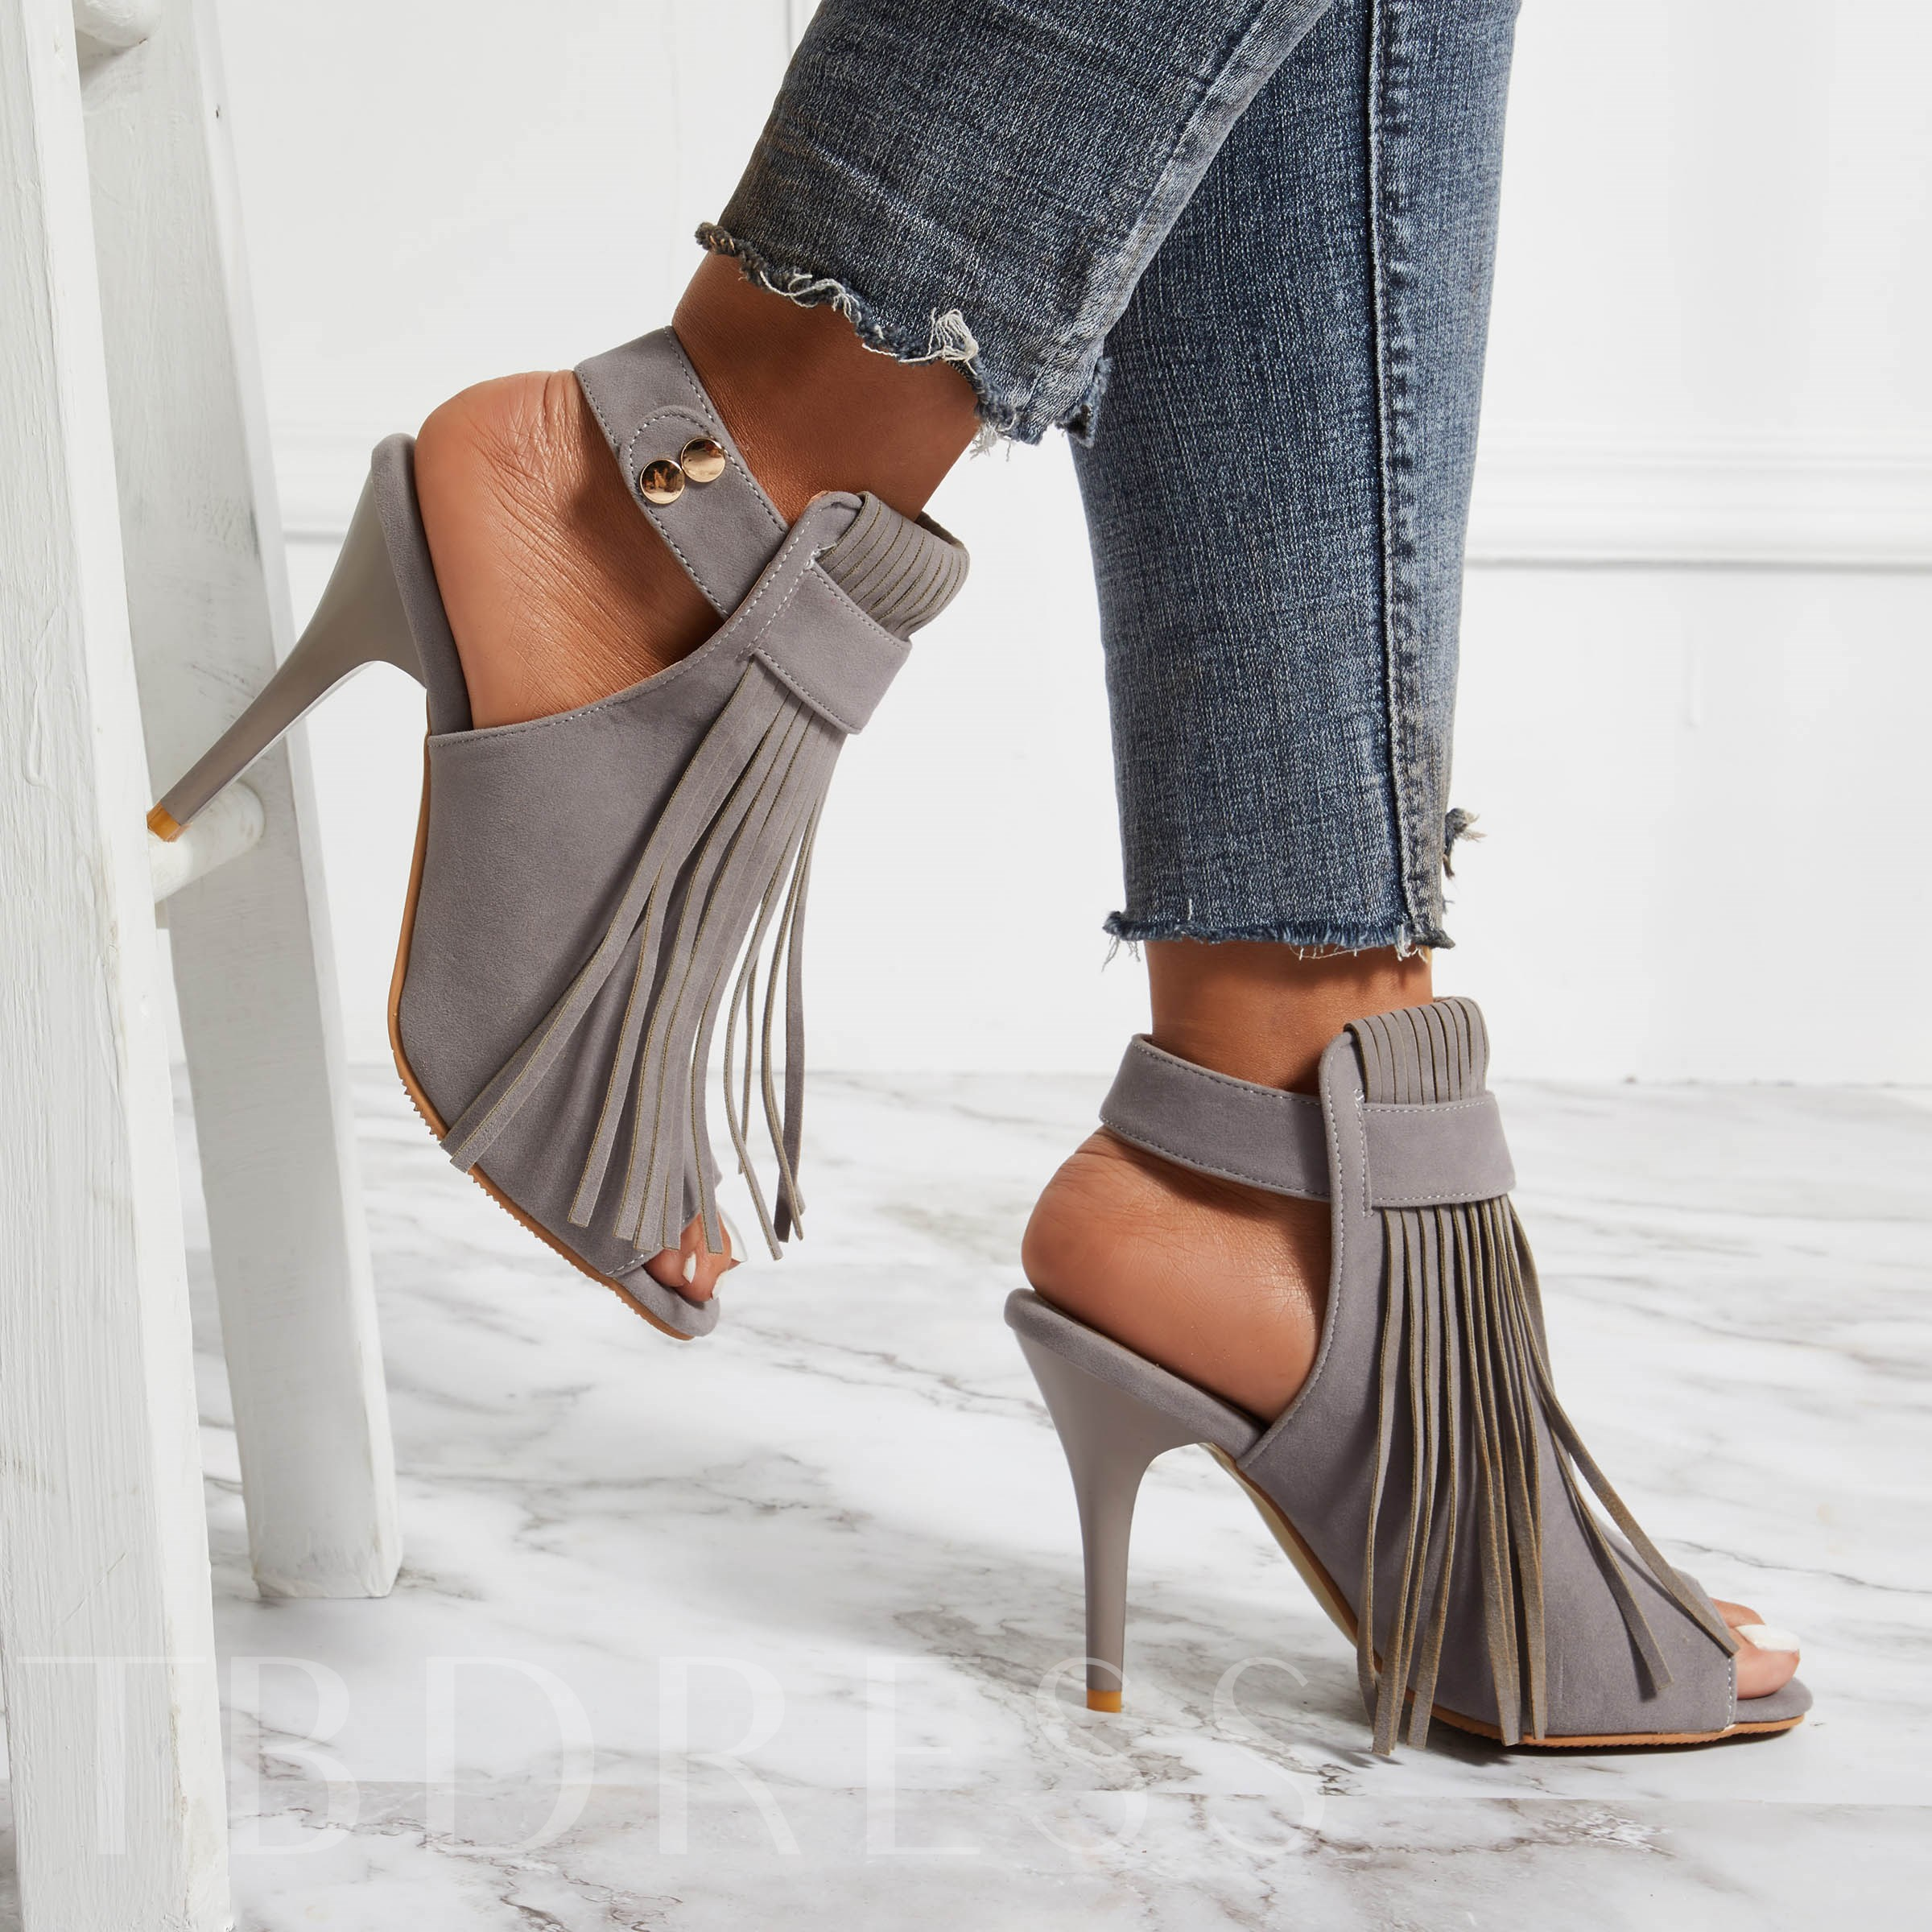 Strappy Buckle Stiletto Heel Peep Toe Fringe Women's Sandals